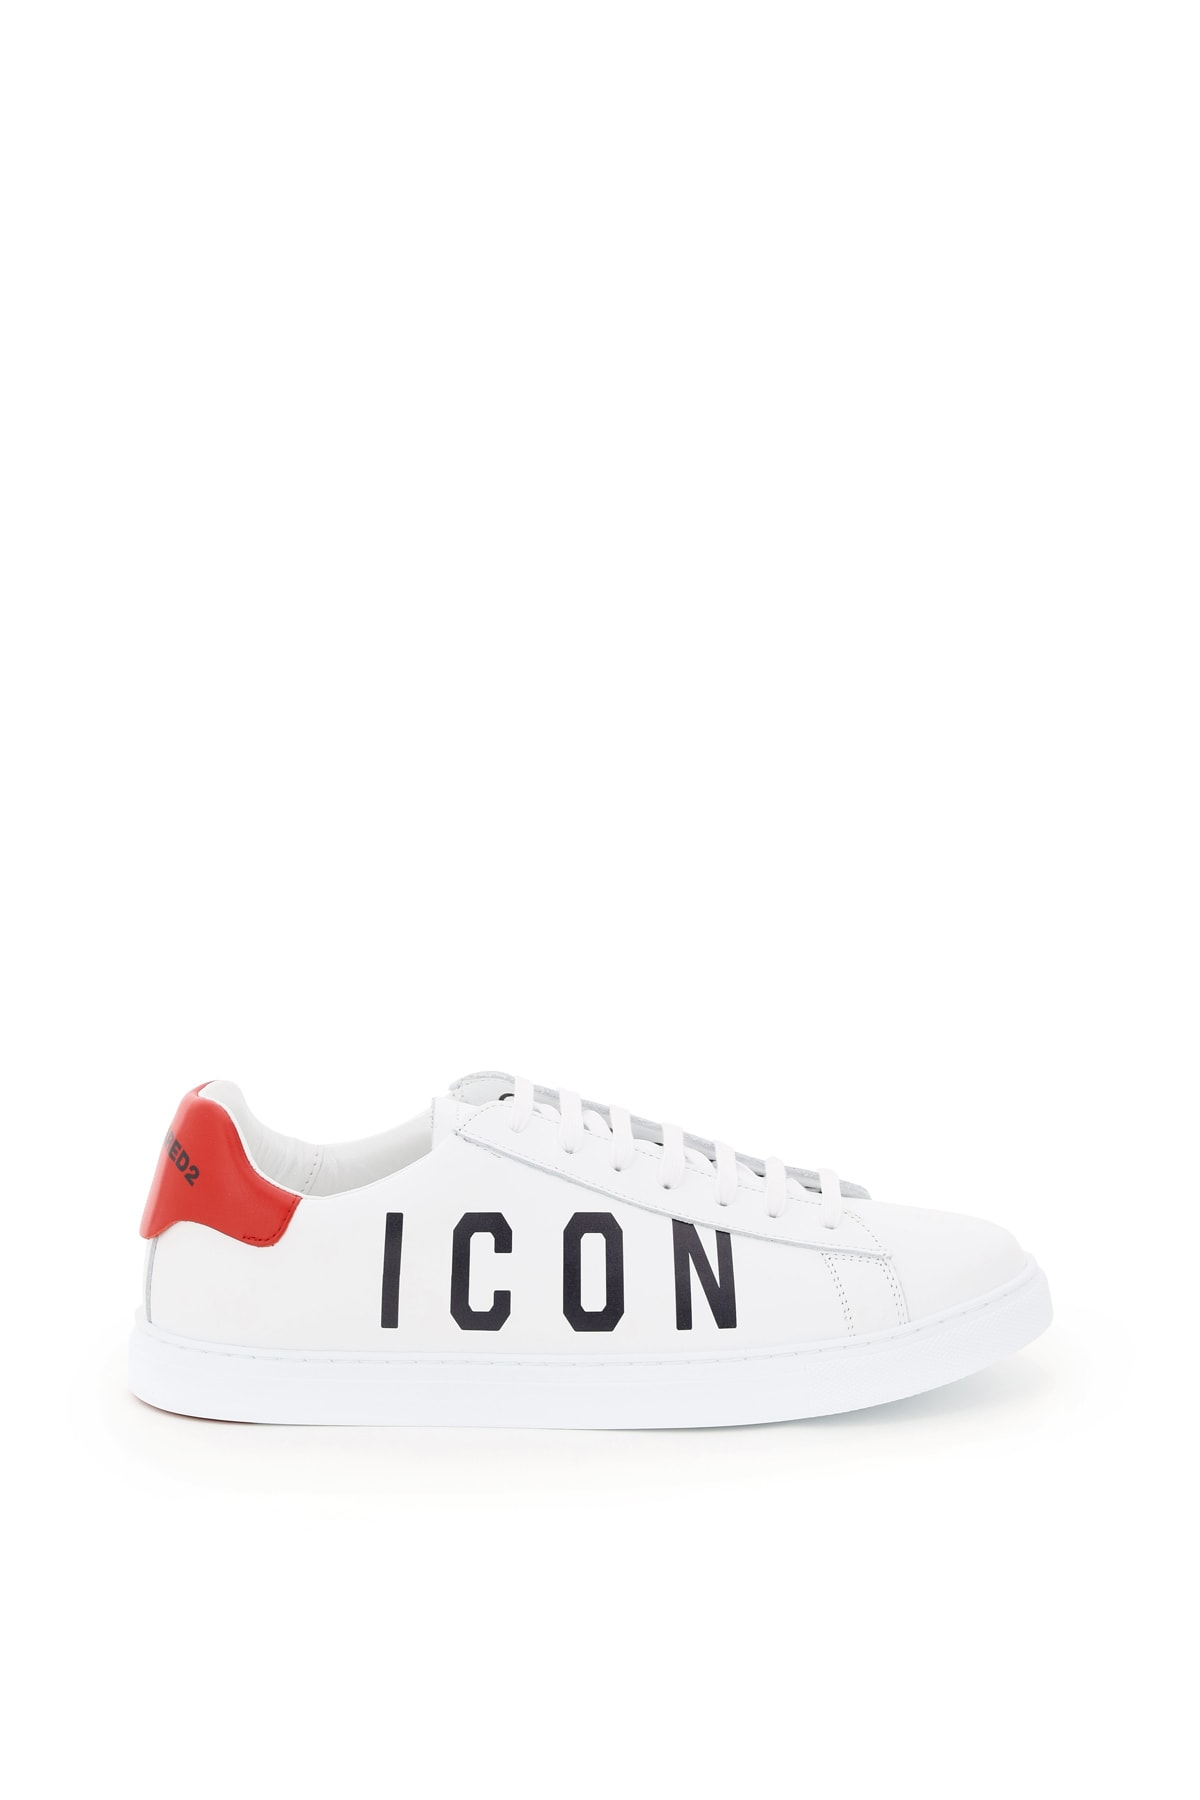 Dsquared2 Leathers NEW TENNIS LEATHER SNEAKERS ICON LOGO